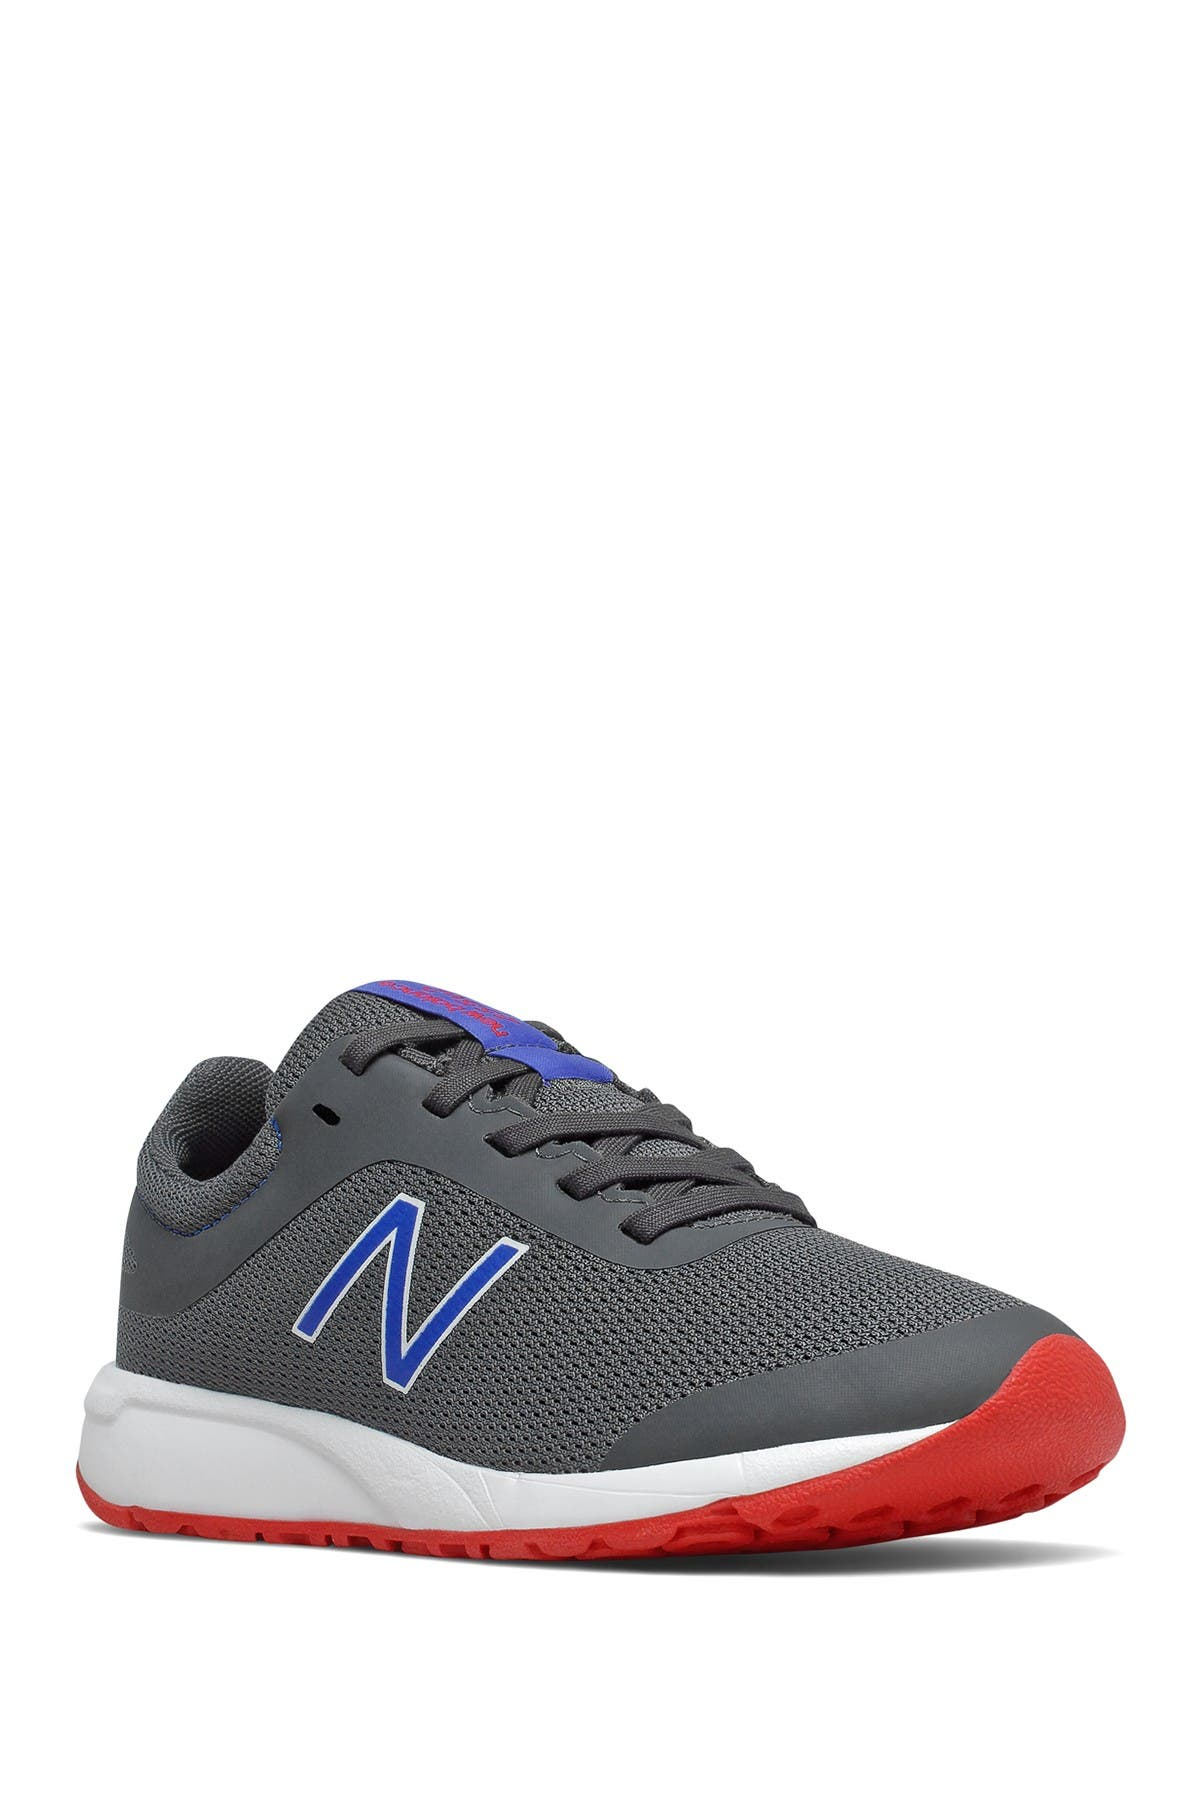 Image of New Balance 455 V2 Running Shoe